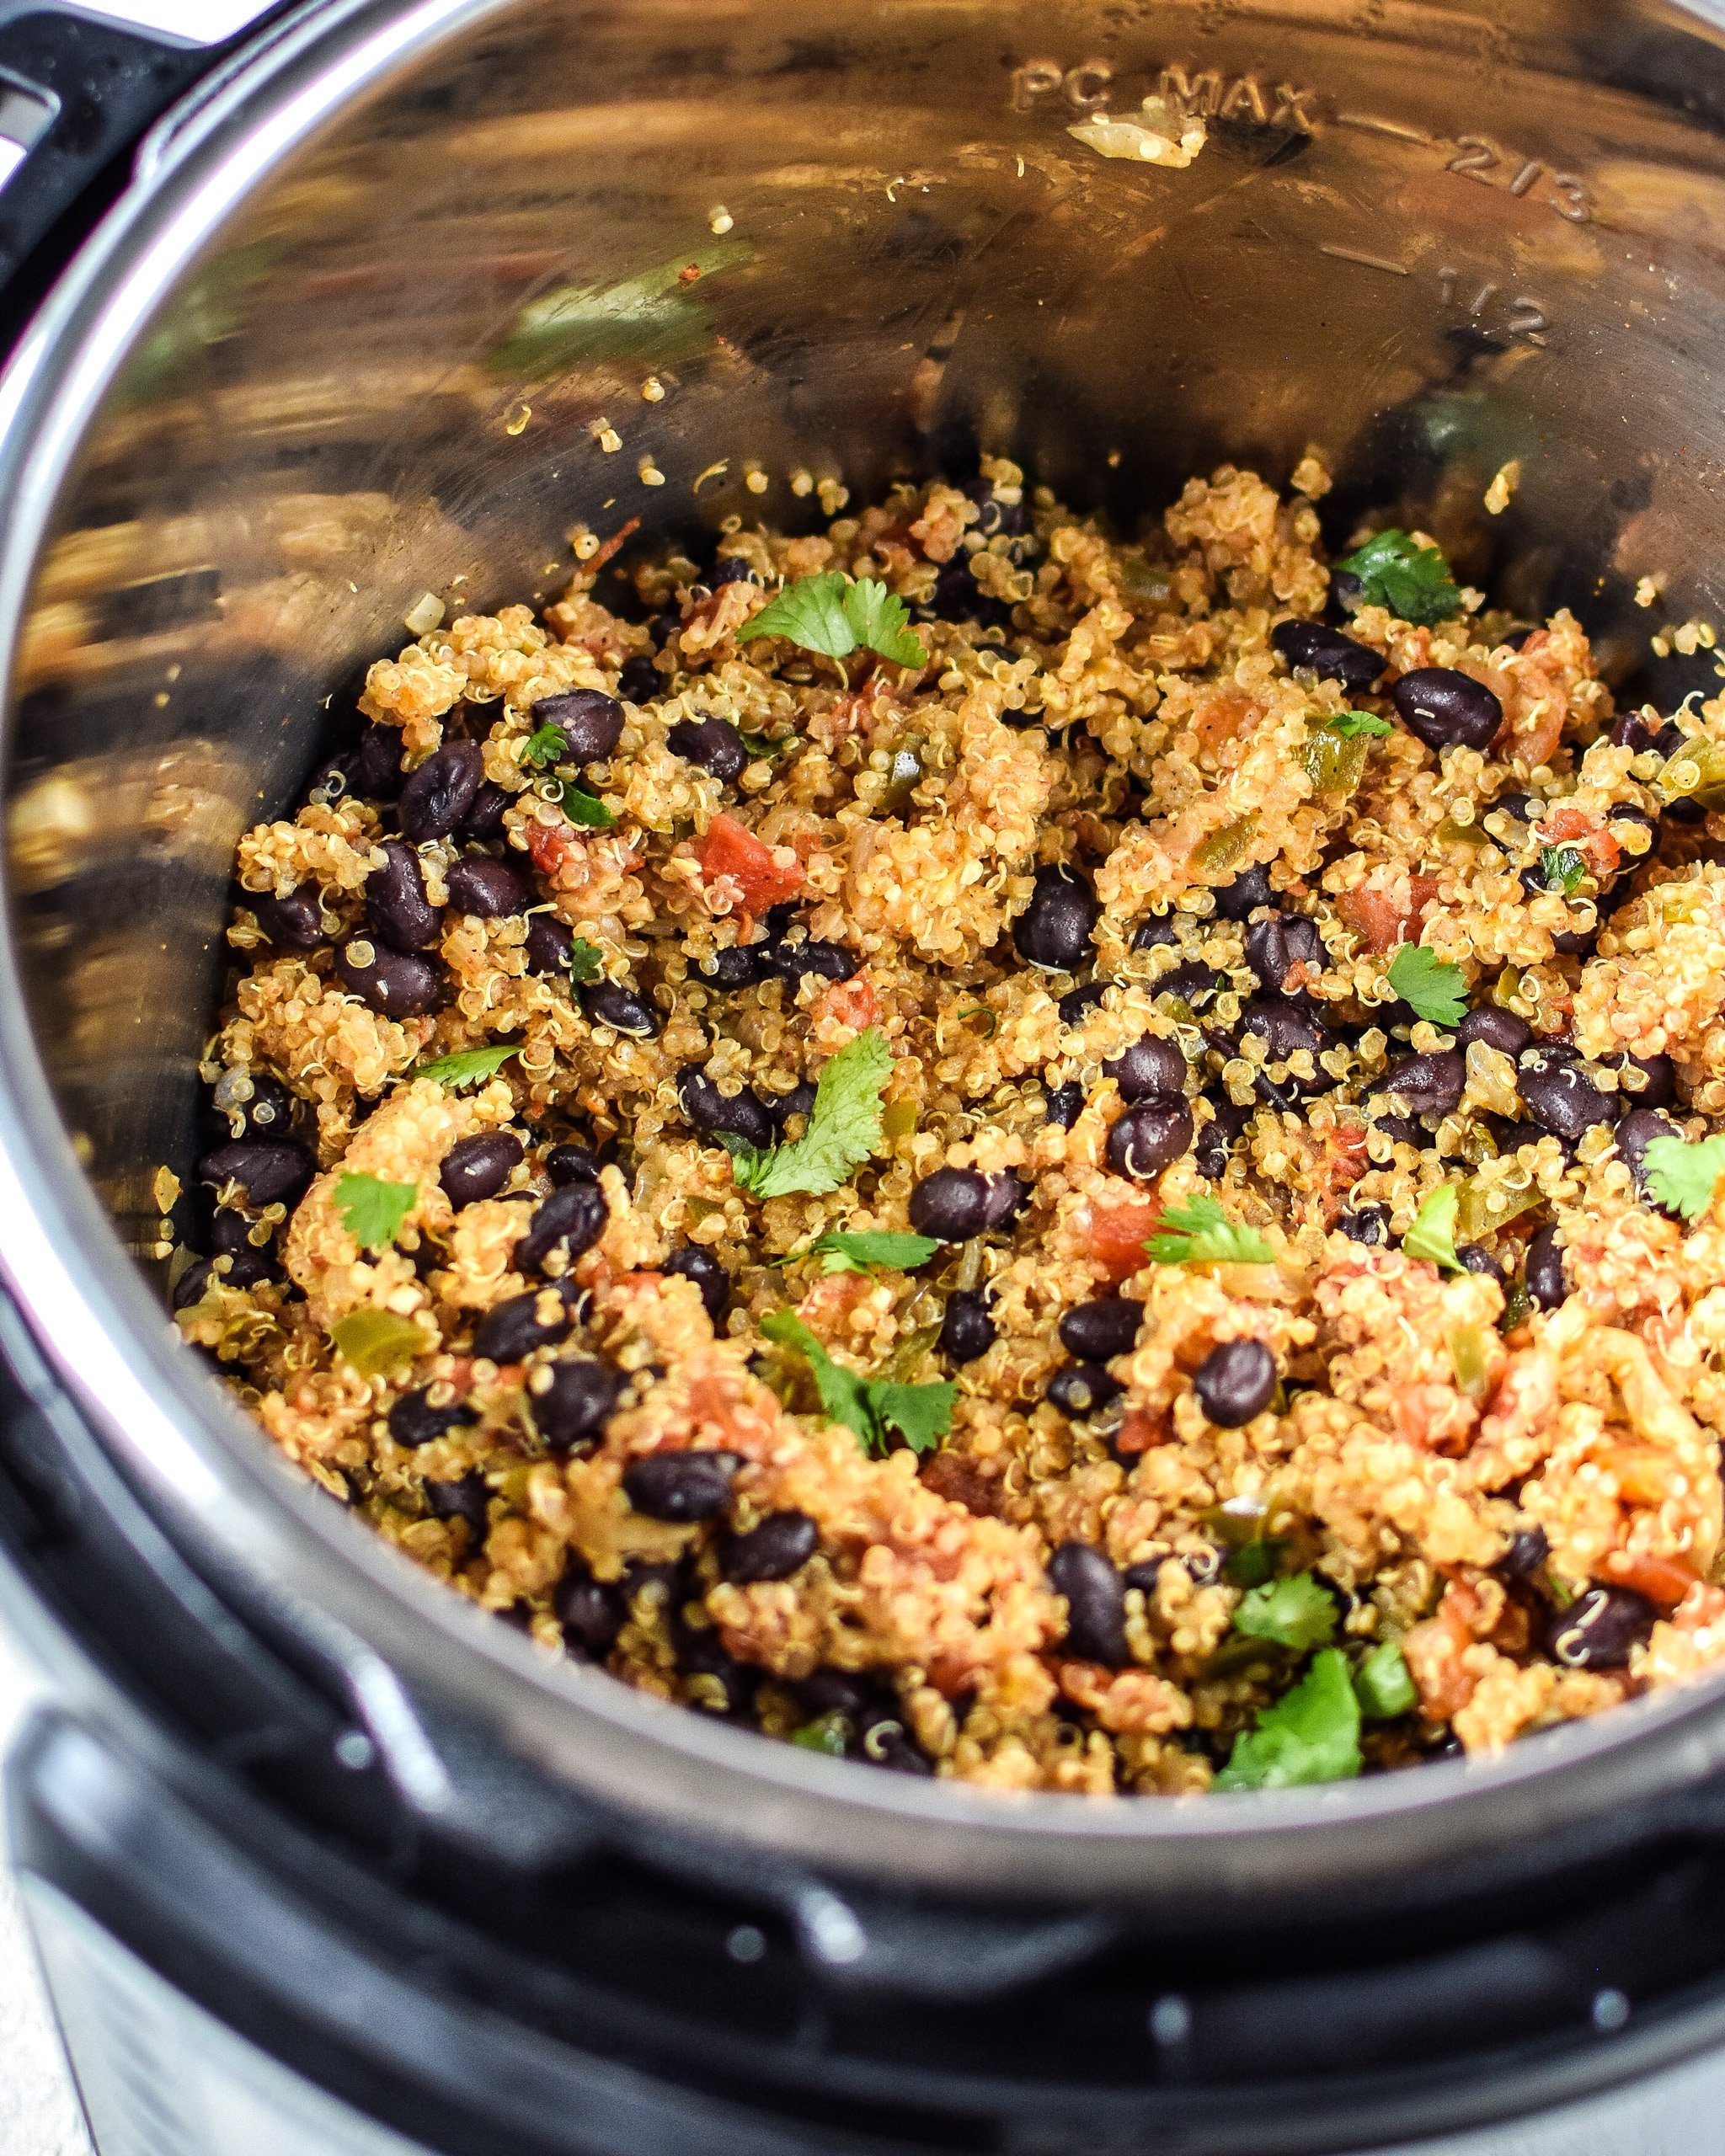 Cooked Mexican quinoa with black beans and cilantro in an Instant Pot.